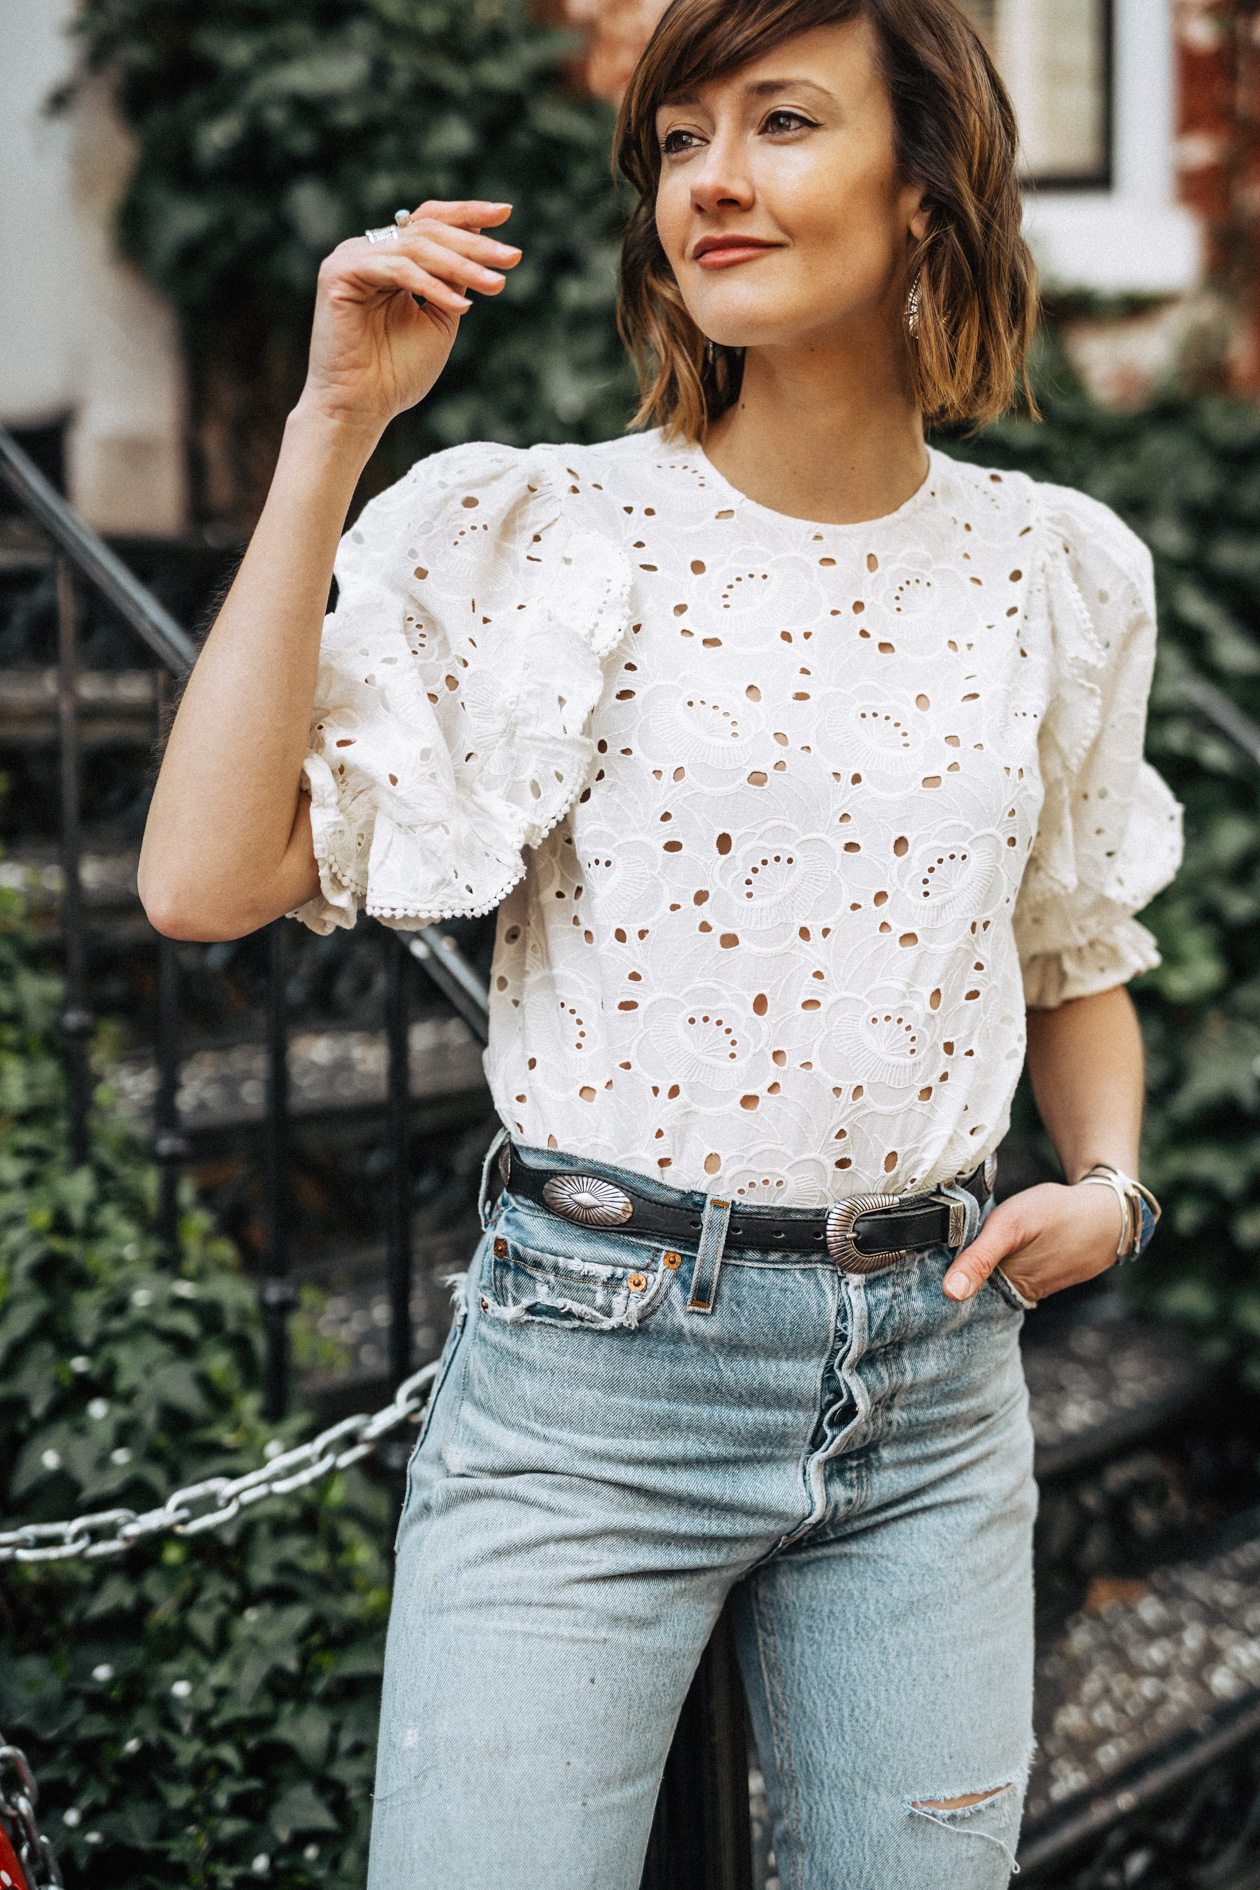 Sezane eyelet top and vintage jeans